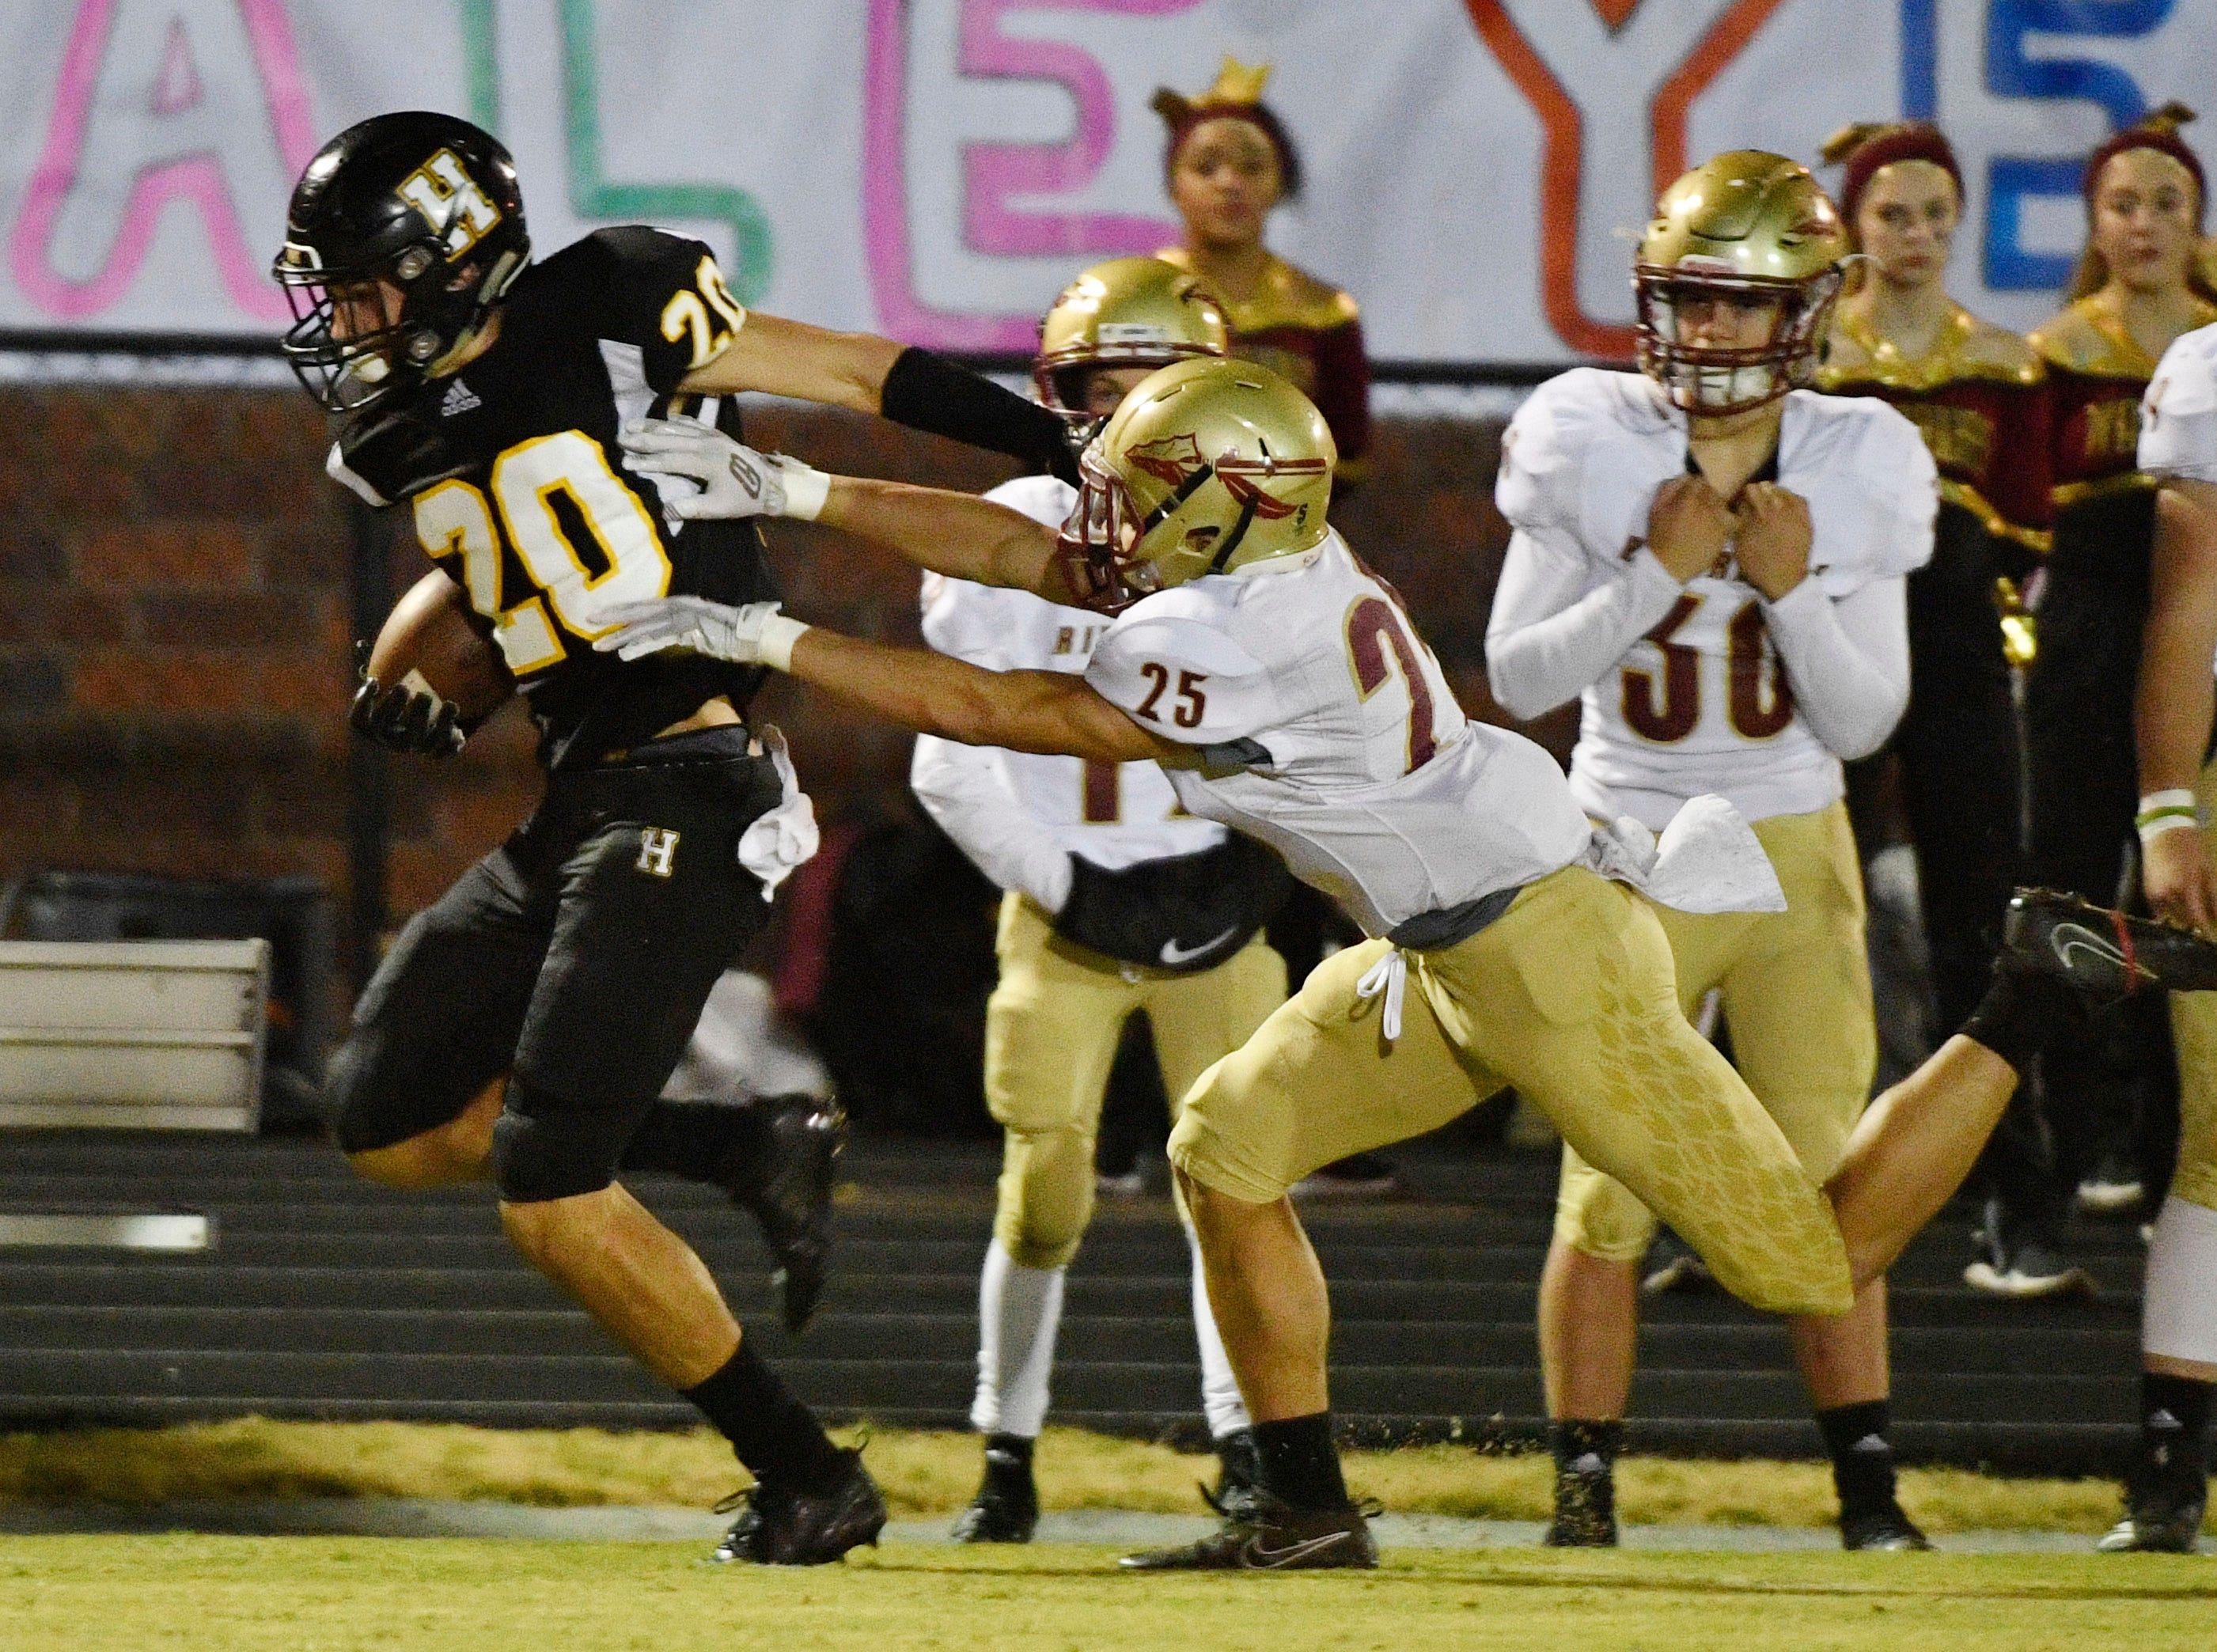 Hendersonville's Nate Hancock is pushed out of bounds by Rifverdale's CJ Johnson as Riverdale plays at Hendersonville Friday Nov. 2, 2018, in Hendersonville, Tenn.